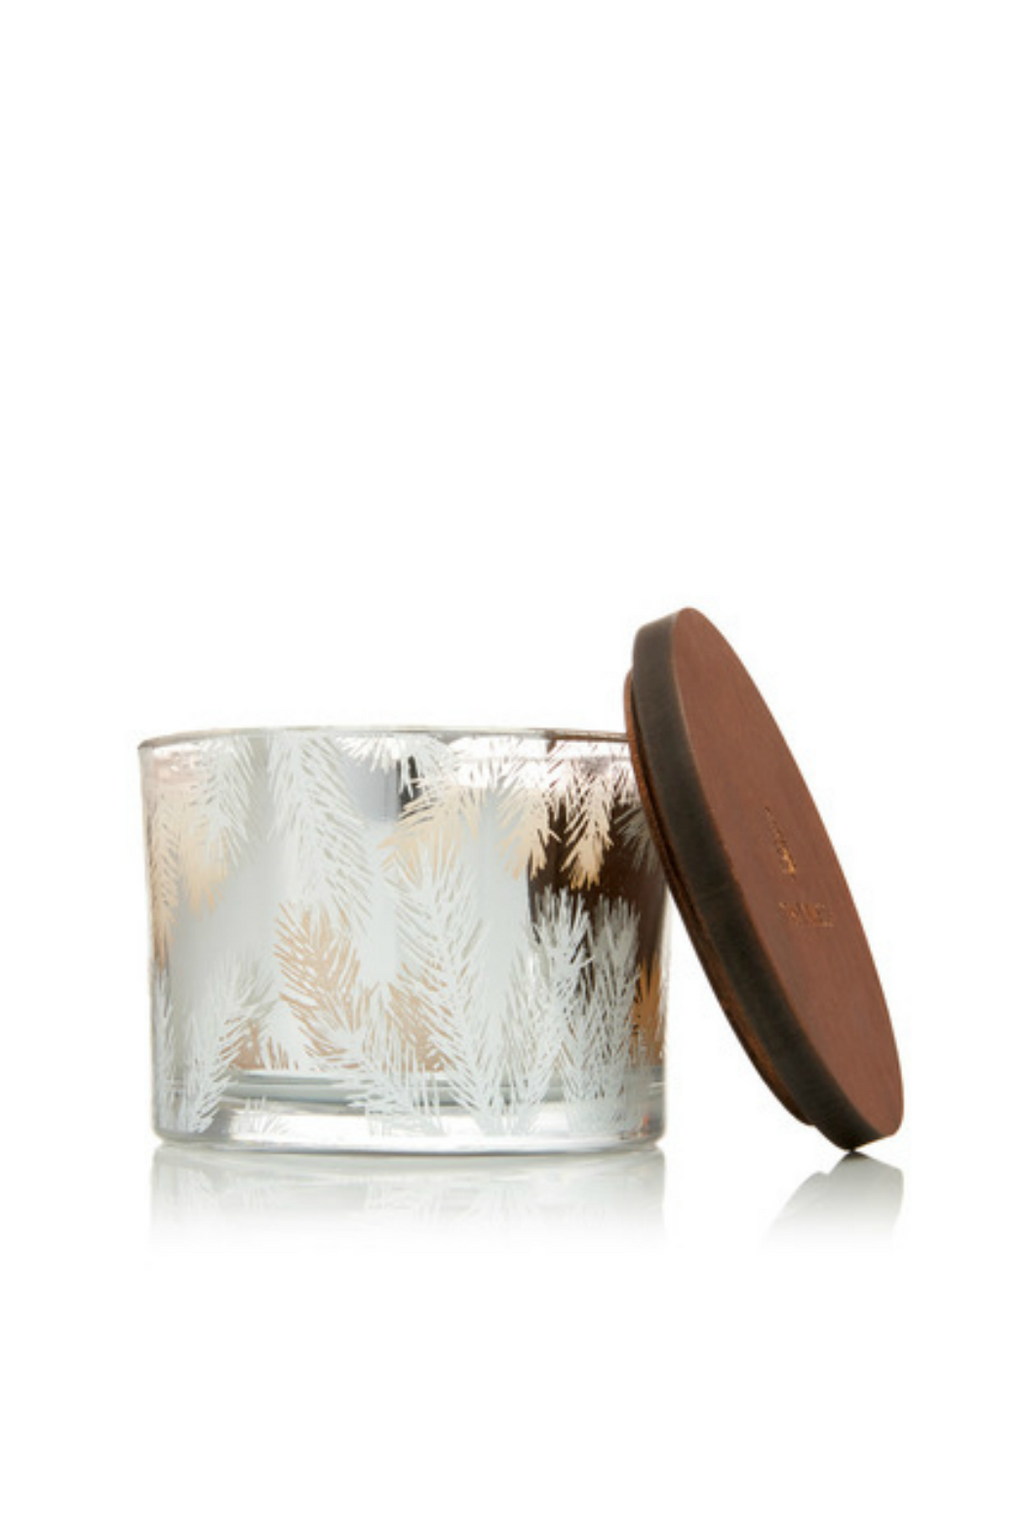 Thymes Frasier Fir Statement Glass Poured Candle